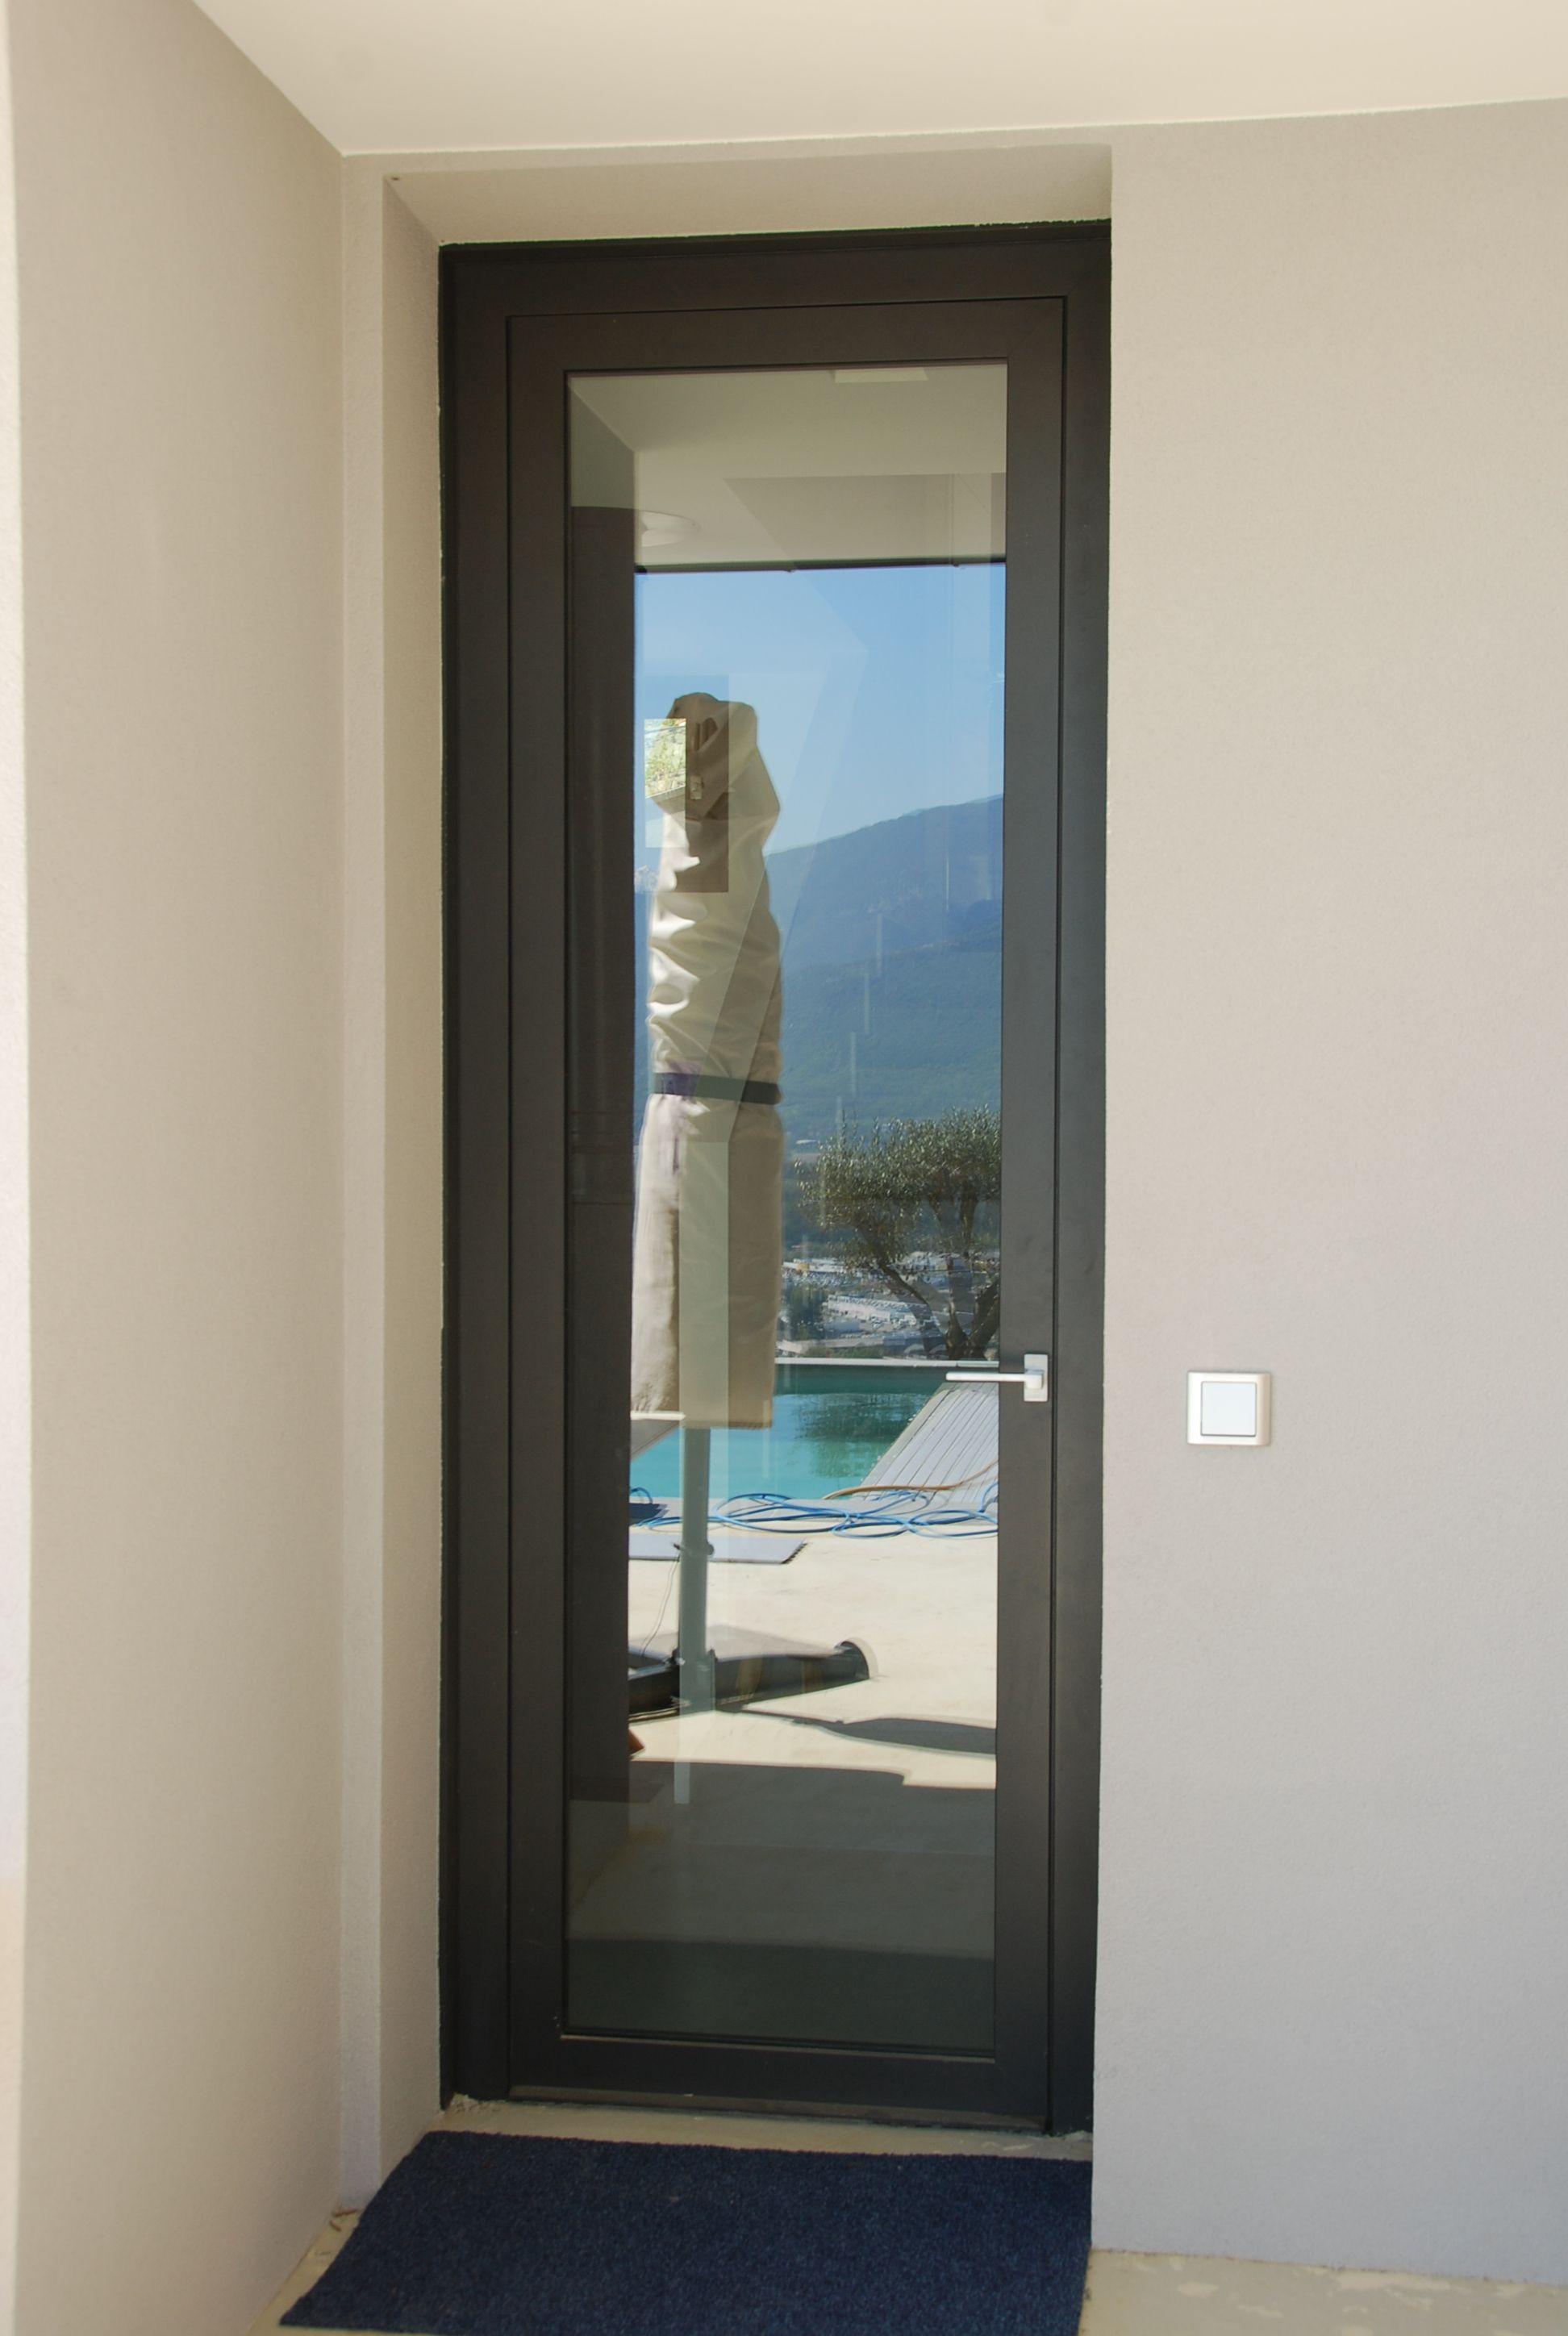 covermetal porte d 39 entr e vitr e main door pinterest main door and doors